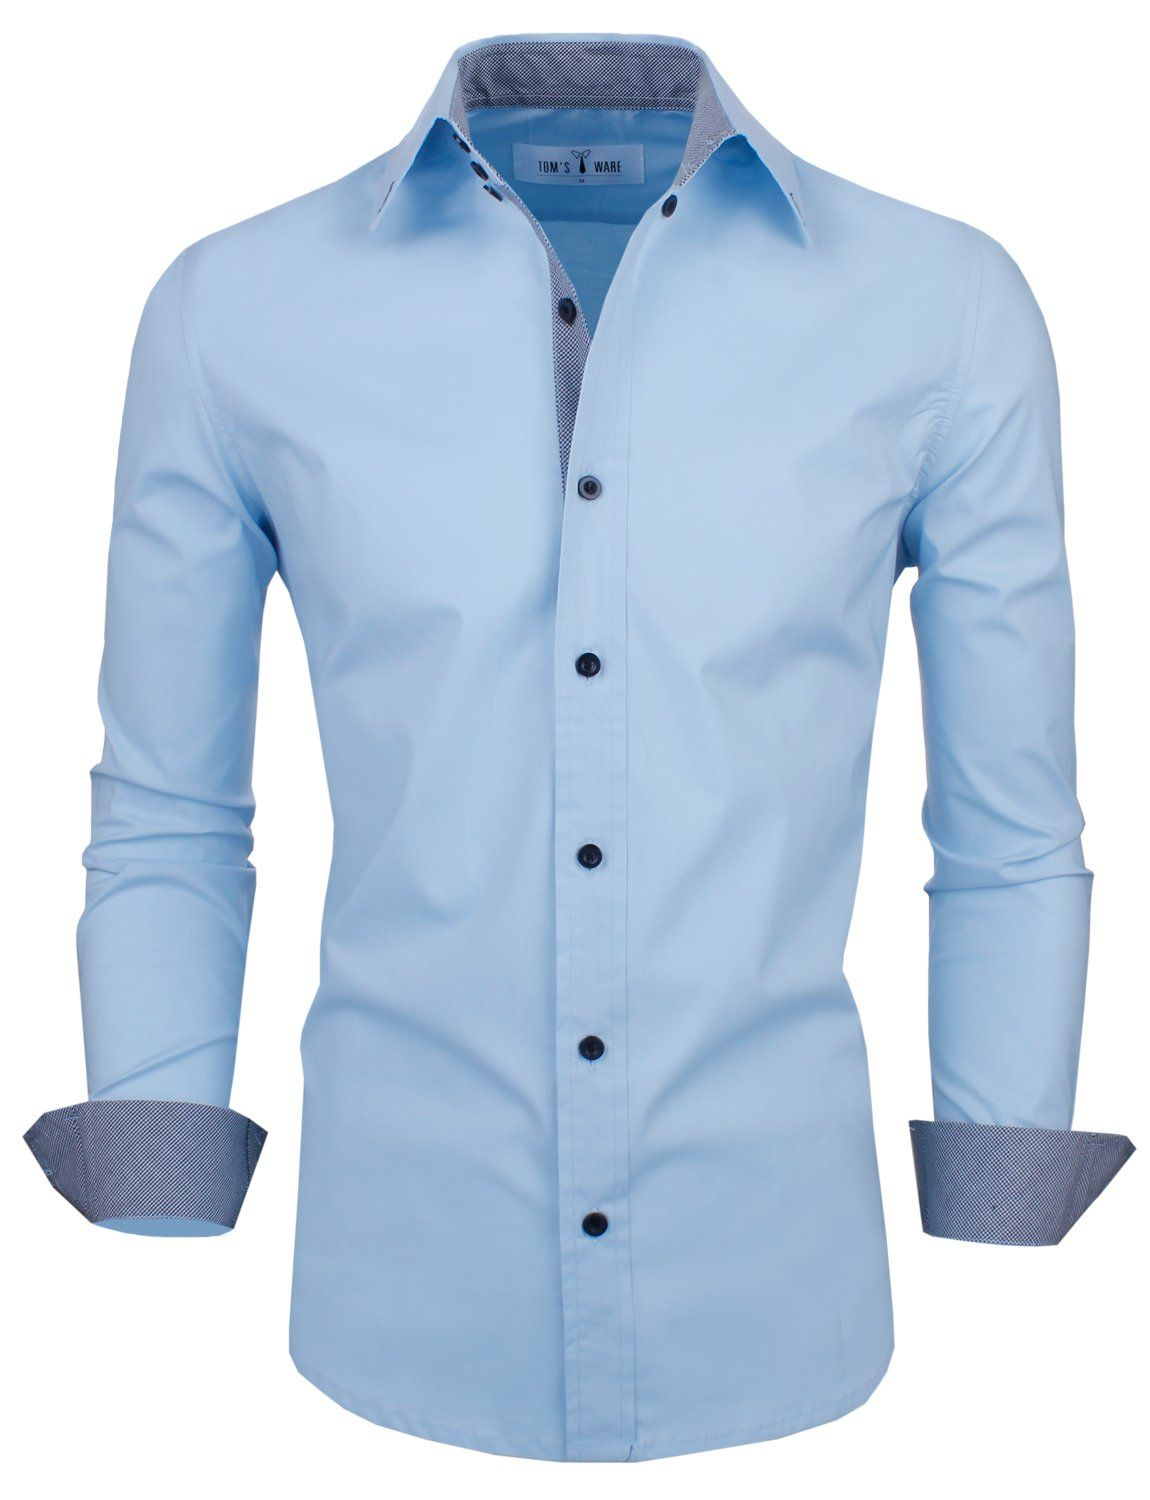 Tomus ware menus slim fit long sleeve with checkered buttons shirts